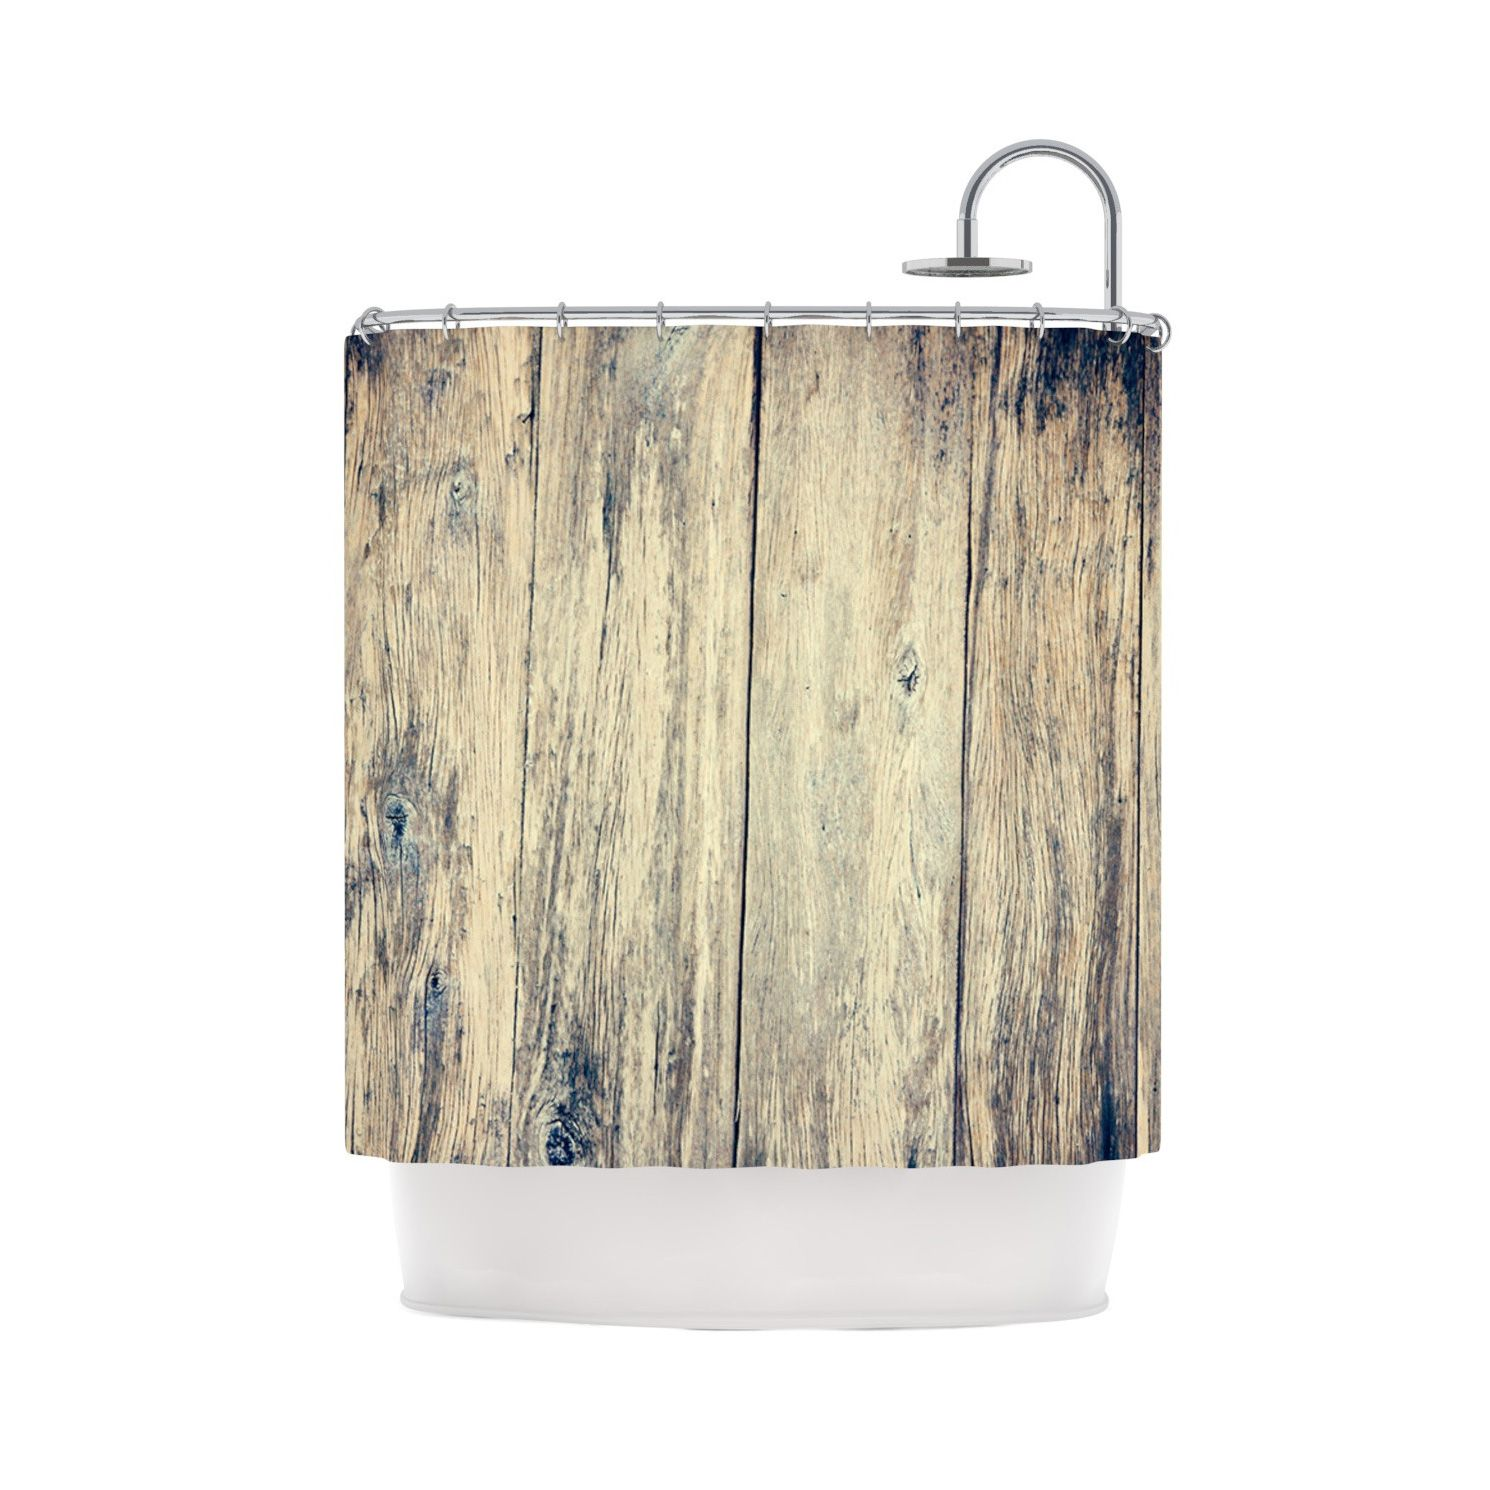 Industrial Bathroom Shower Curtain Google Search With Images